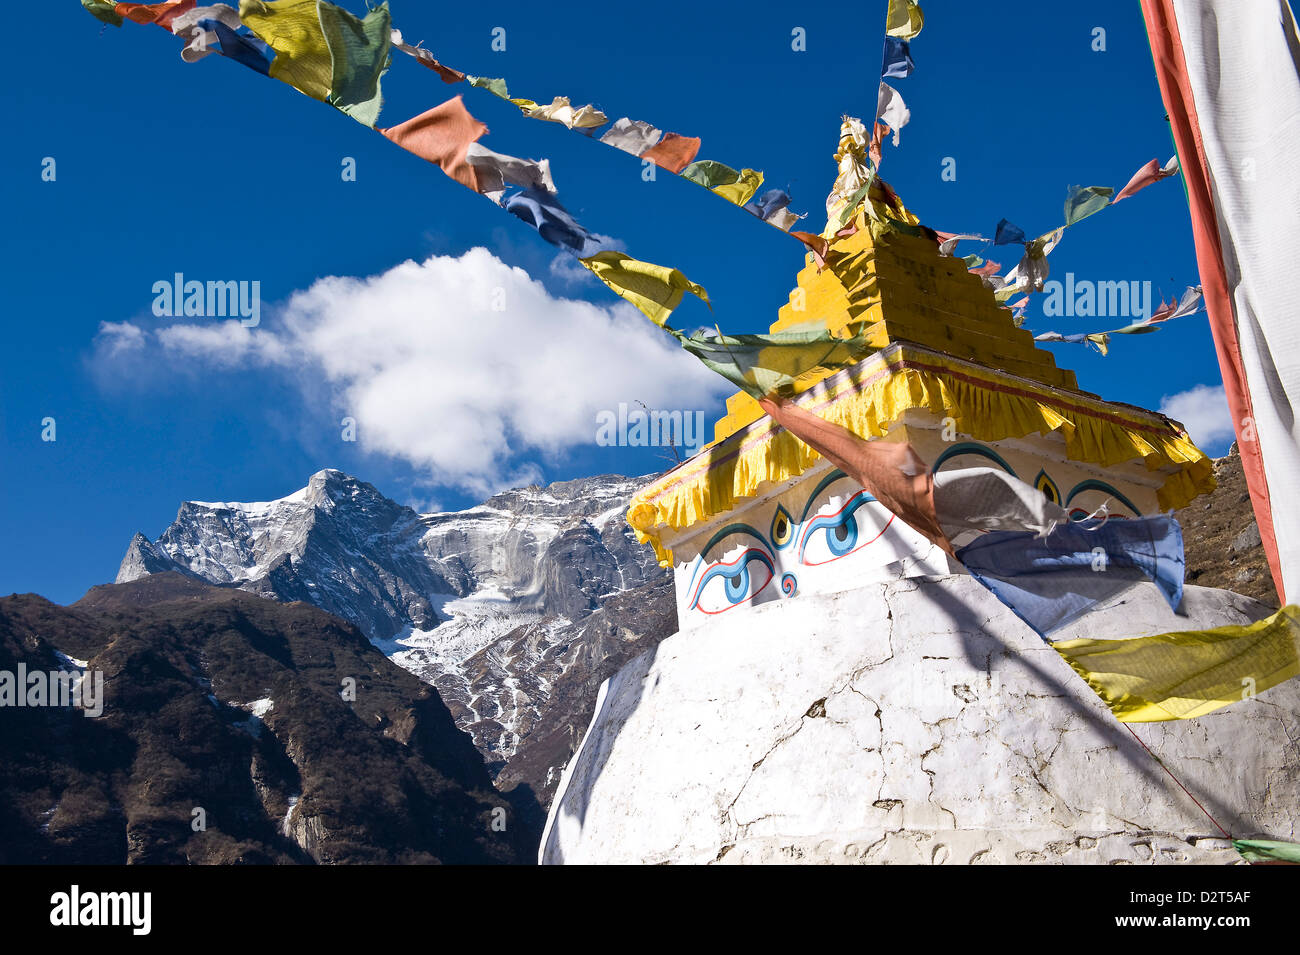 Prayer flags and Buddhist stupa, Namche Bazaar, Solu Khumbu Region, Nepal, Himalayas, Asia - Stock Image